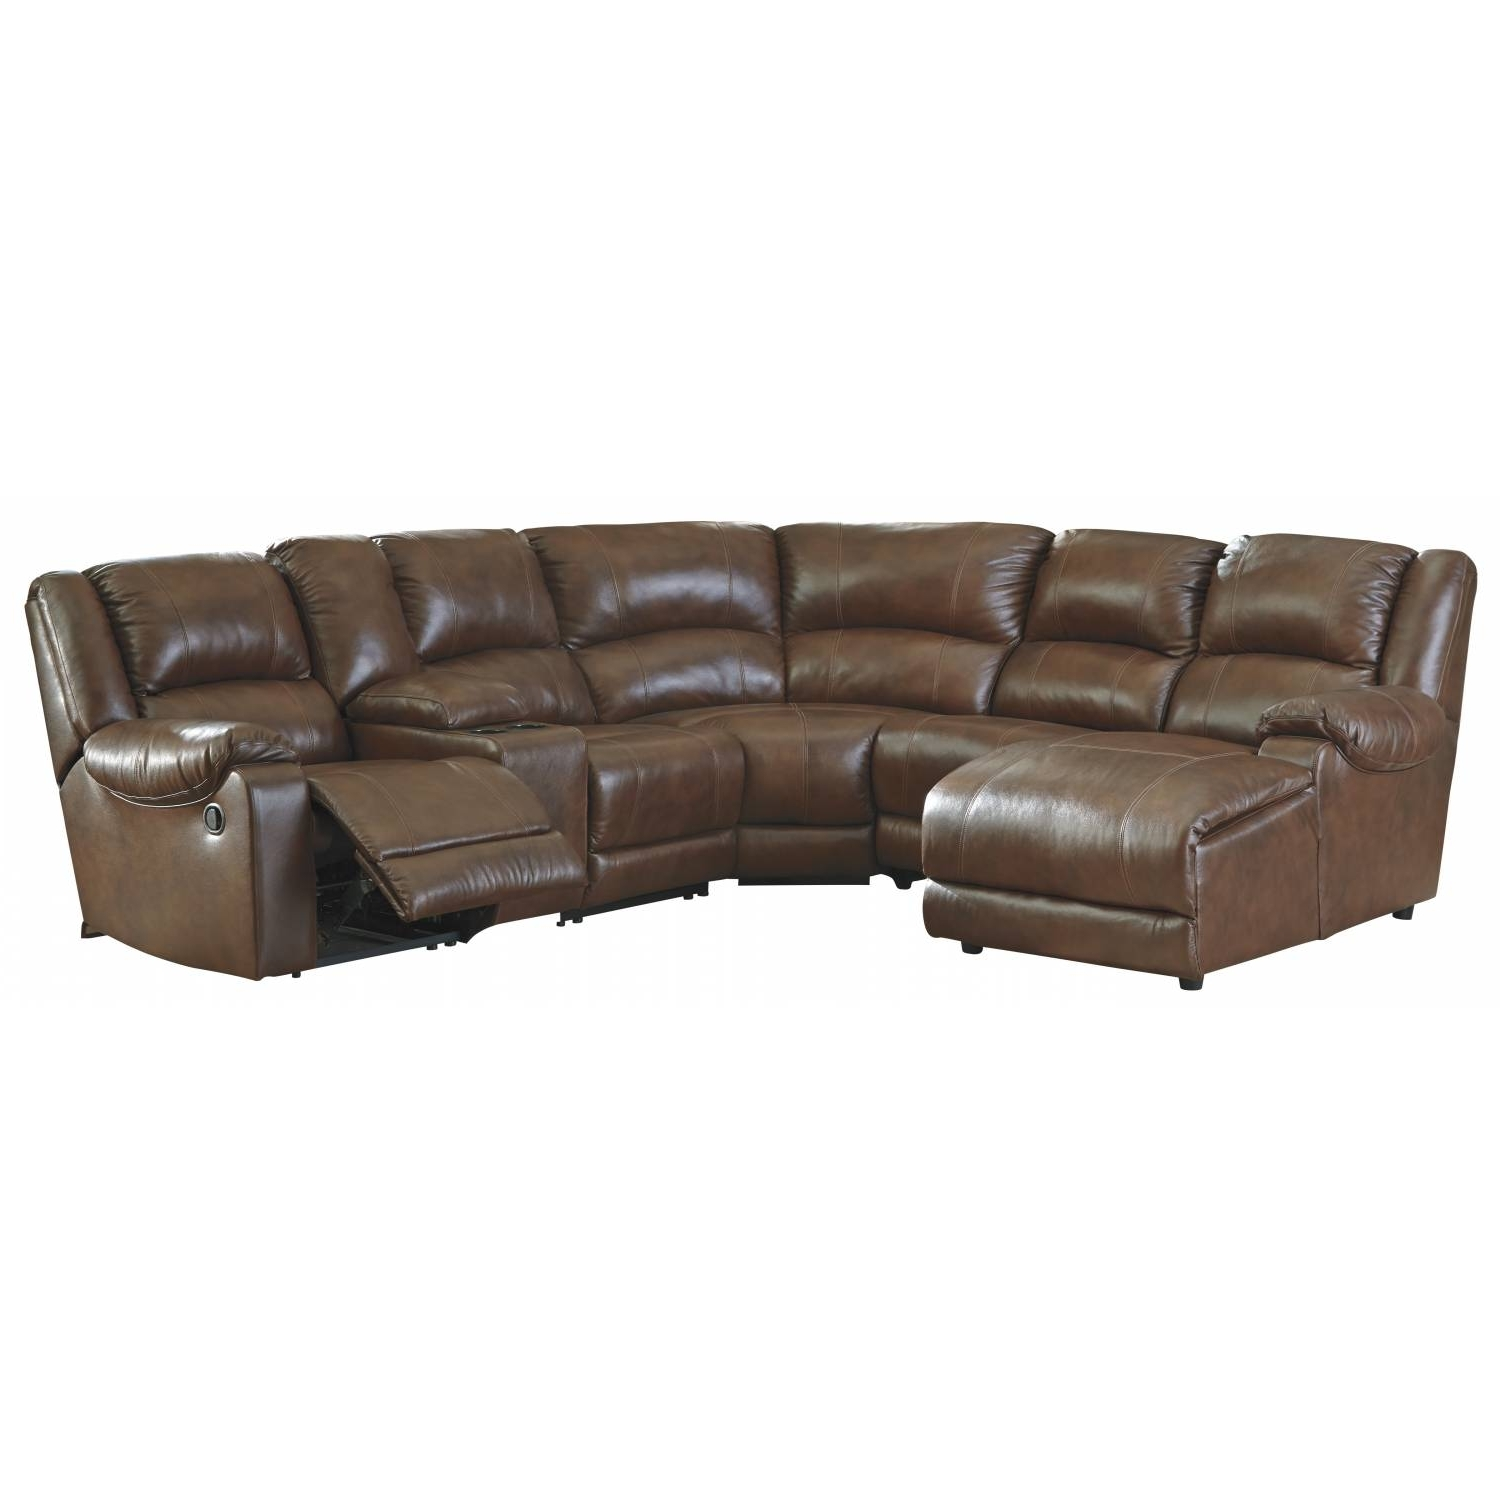 [%Sectional Sofas Discount – Sale Off 20% Furniture In San Francisco Intended For Well Known San Francisco Sectional Sofas|San Francisco Sectional Sofas With Regard To Most Up To Date Sectional Sofas Discount – Sale Off 20% Furniture In San Francisco|2018 San Francisco Sectional Sofas Intended For Sectional Sofas Discount – Sale Off 20% Furniture In San Francisco|2018 Sectional Sofas Discount – Sale Off 20% Furniture In San Francisco Inside San Francisco Sectional Sofas%] (View 7 of 20)